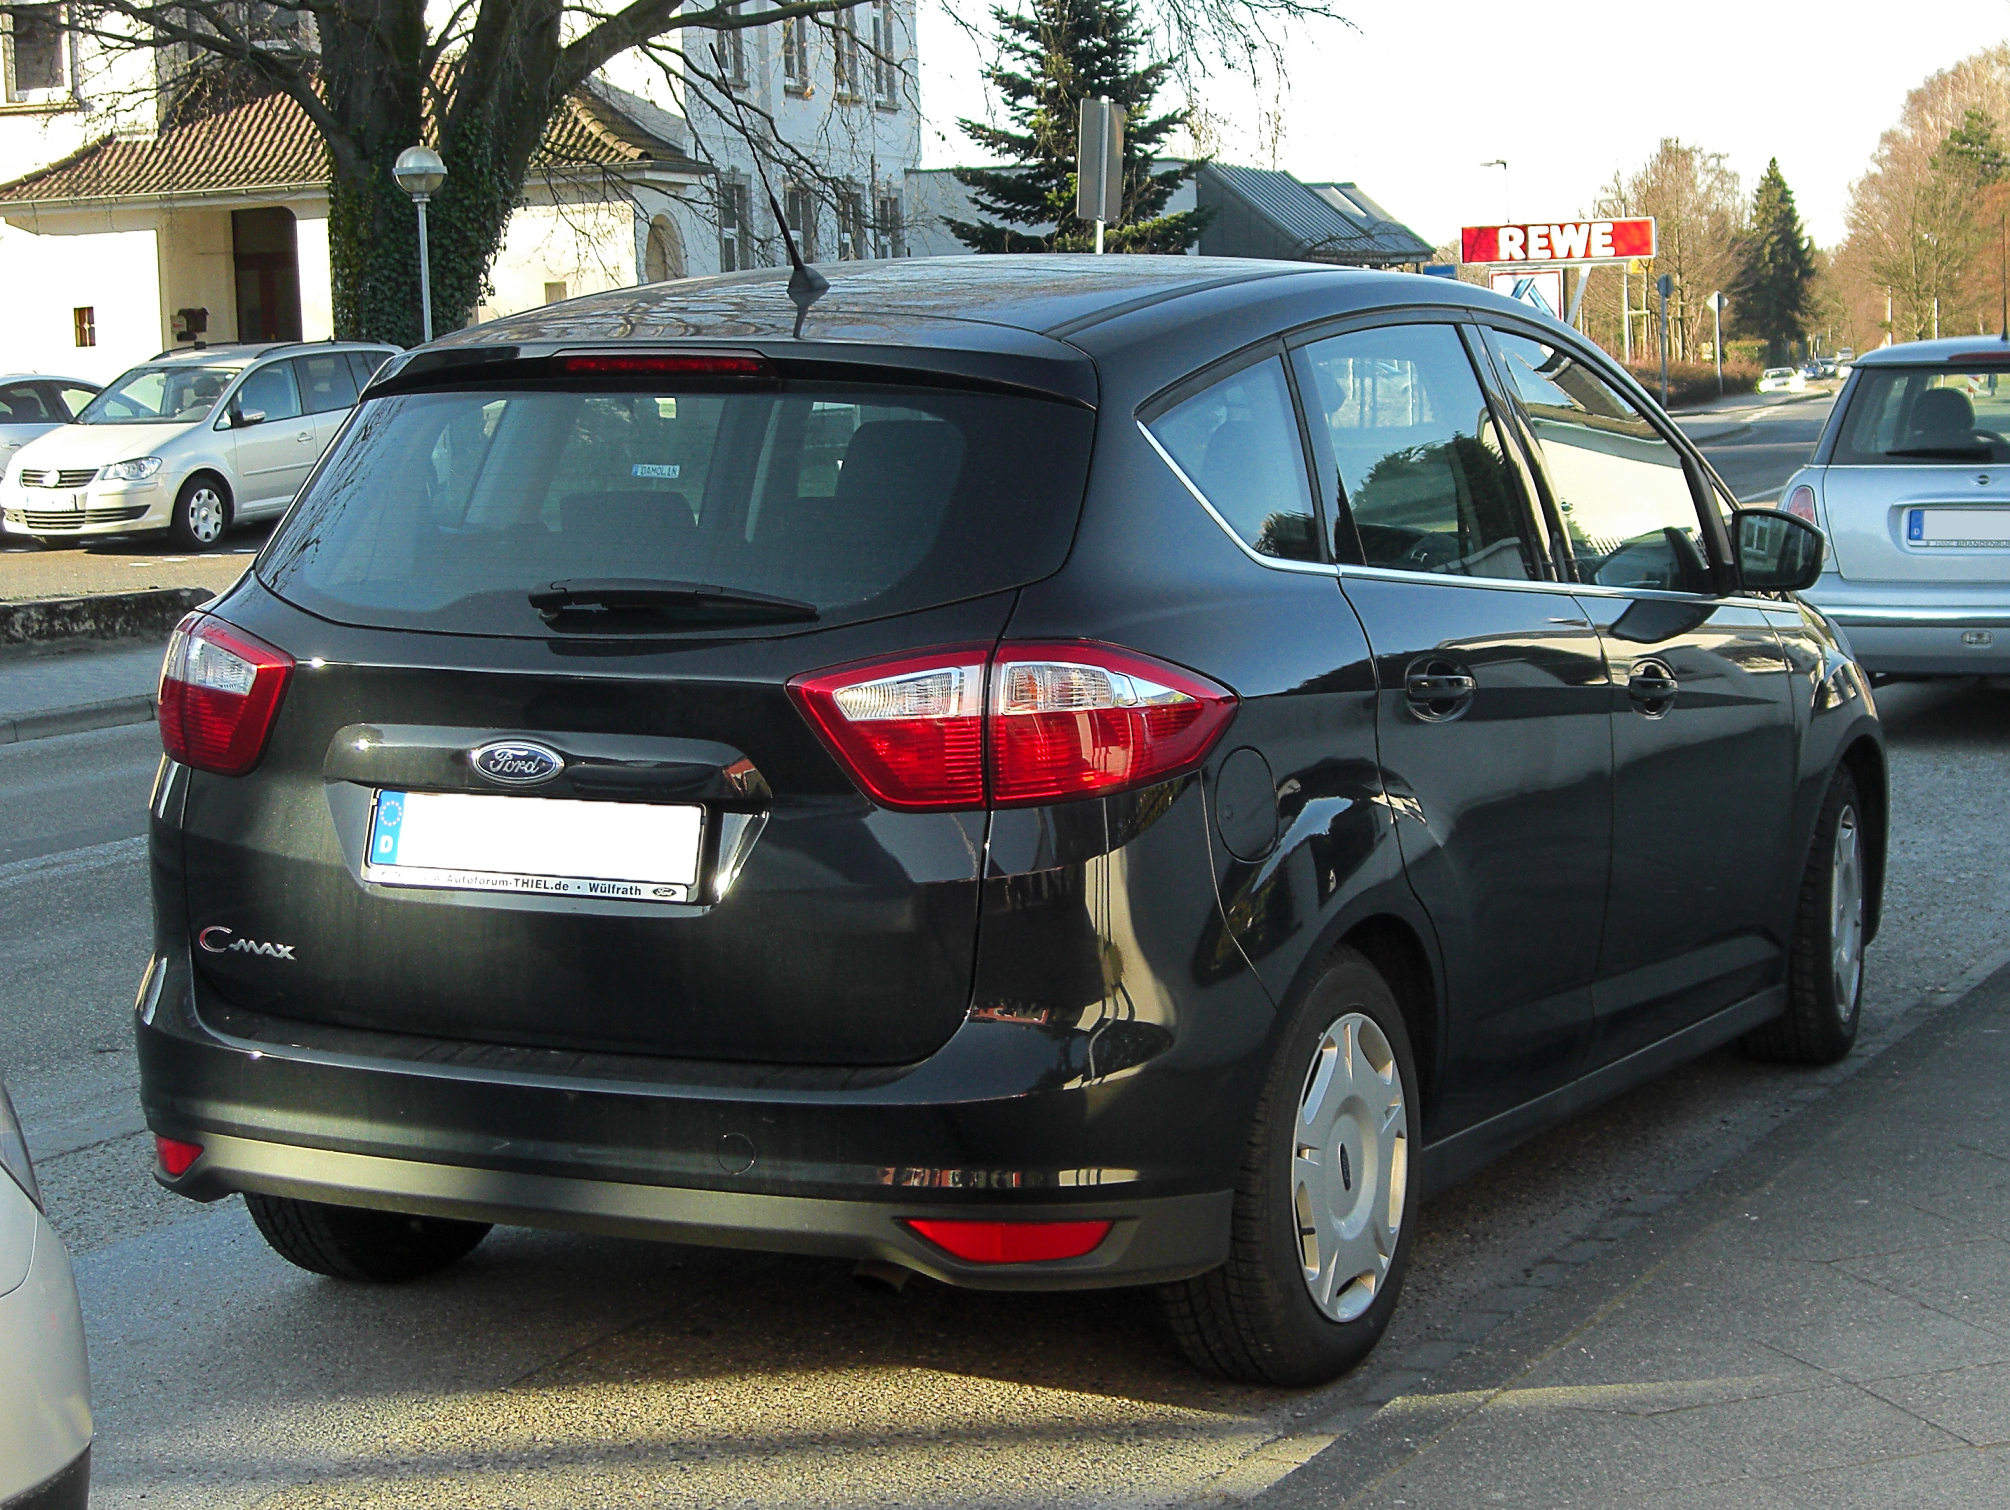 file ford c max ii heckansicht 7 m rz 2011 wikimedia commons. Black Bedroom Furniture Sets. Home Design Ideas